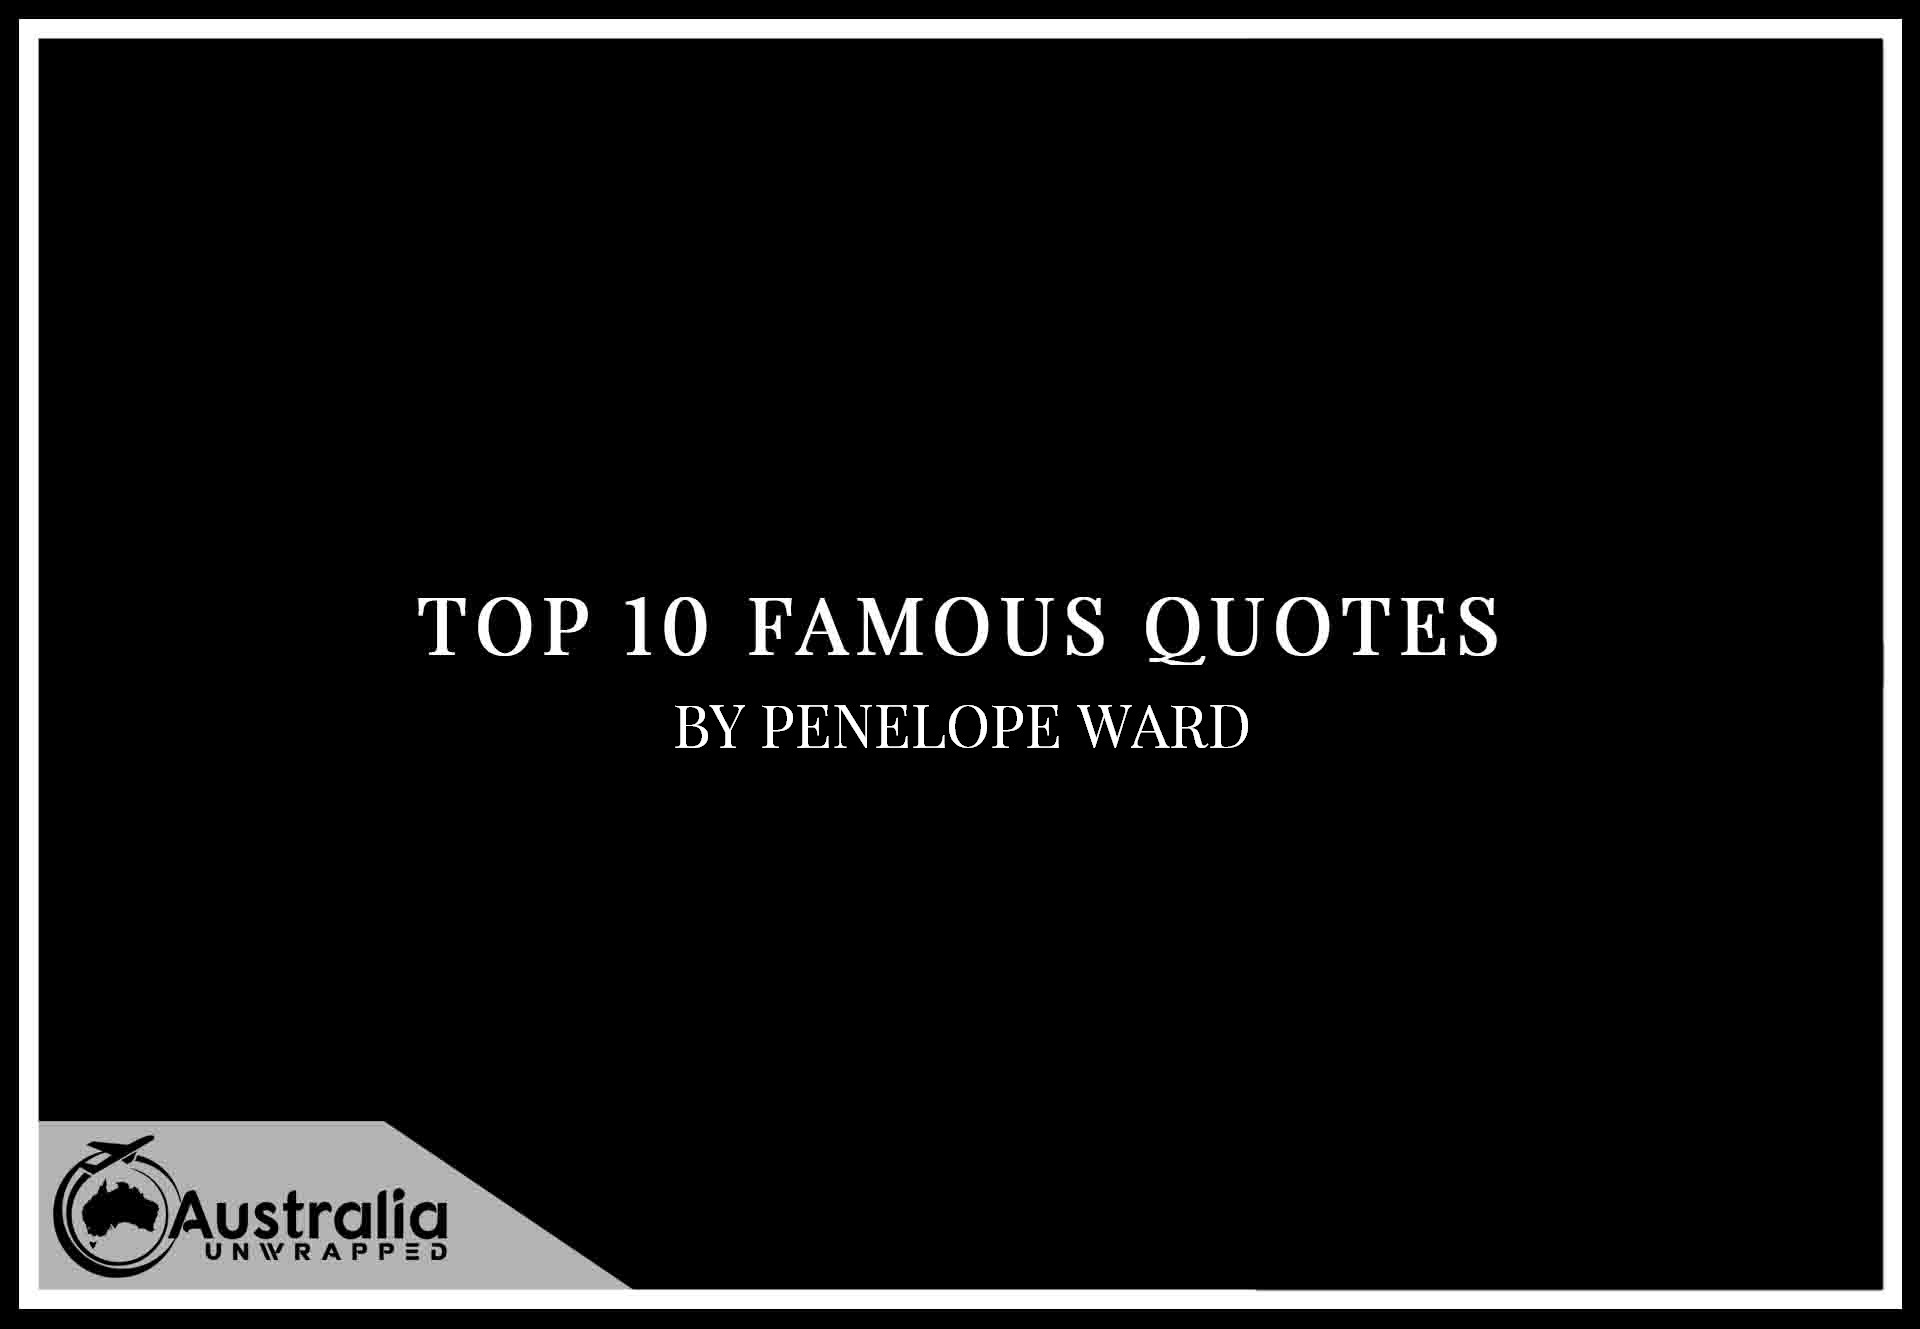 Top 10 Famous Quotes by Author PenAelope Ward